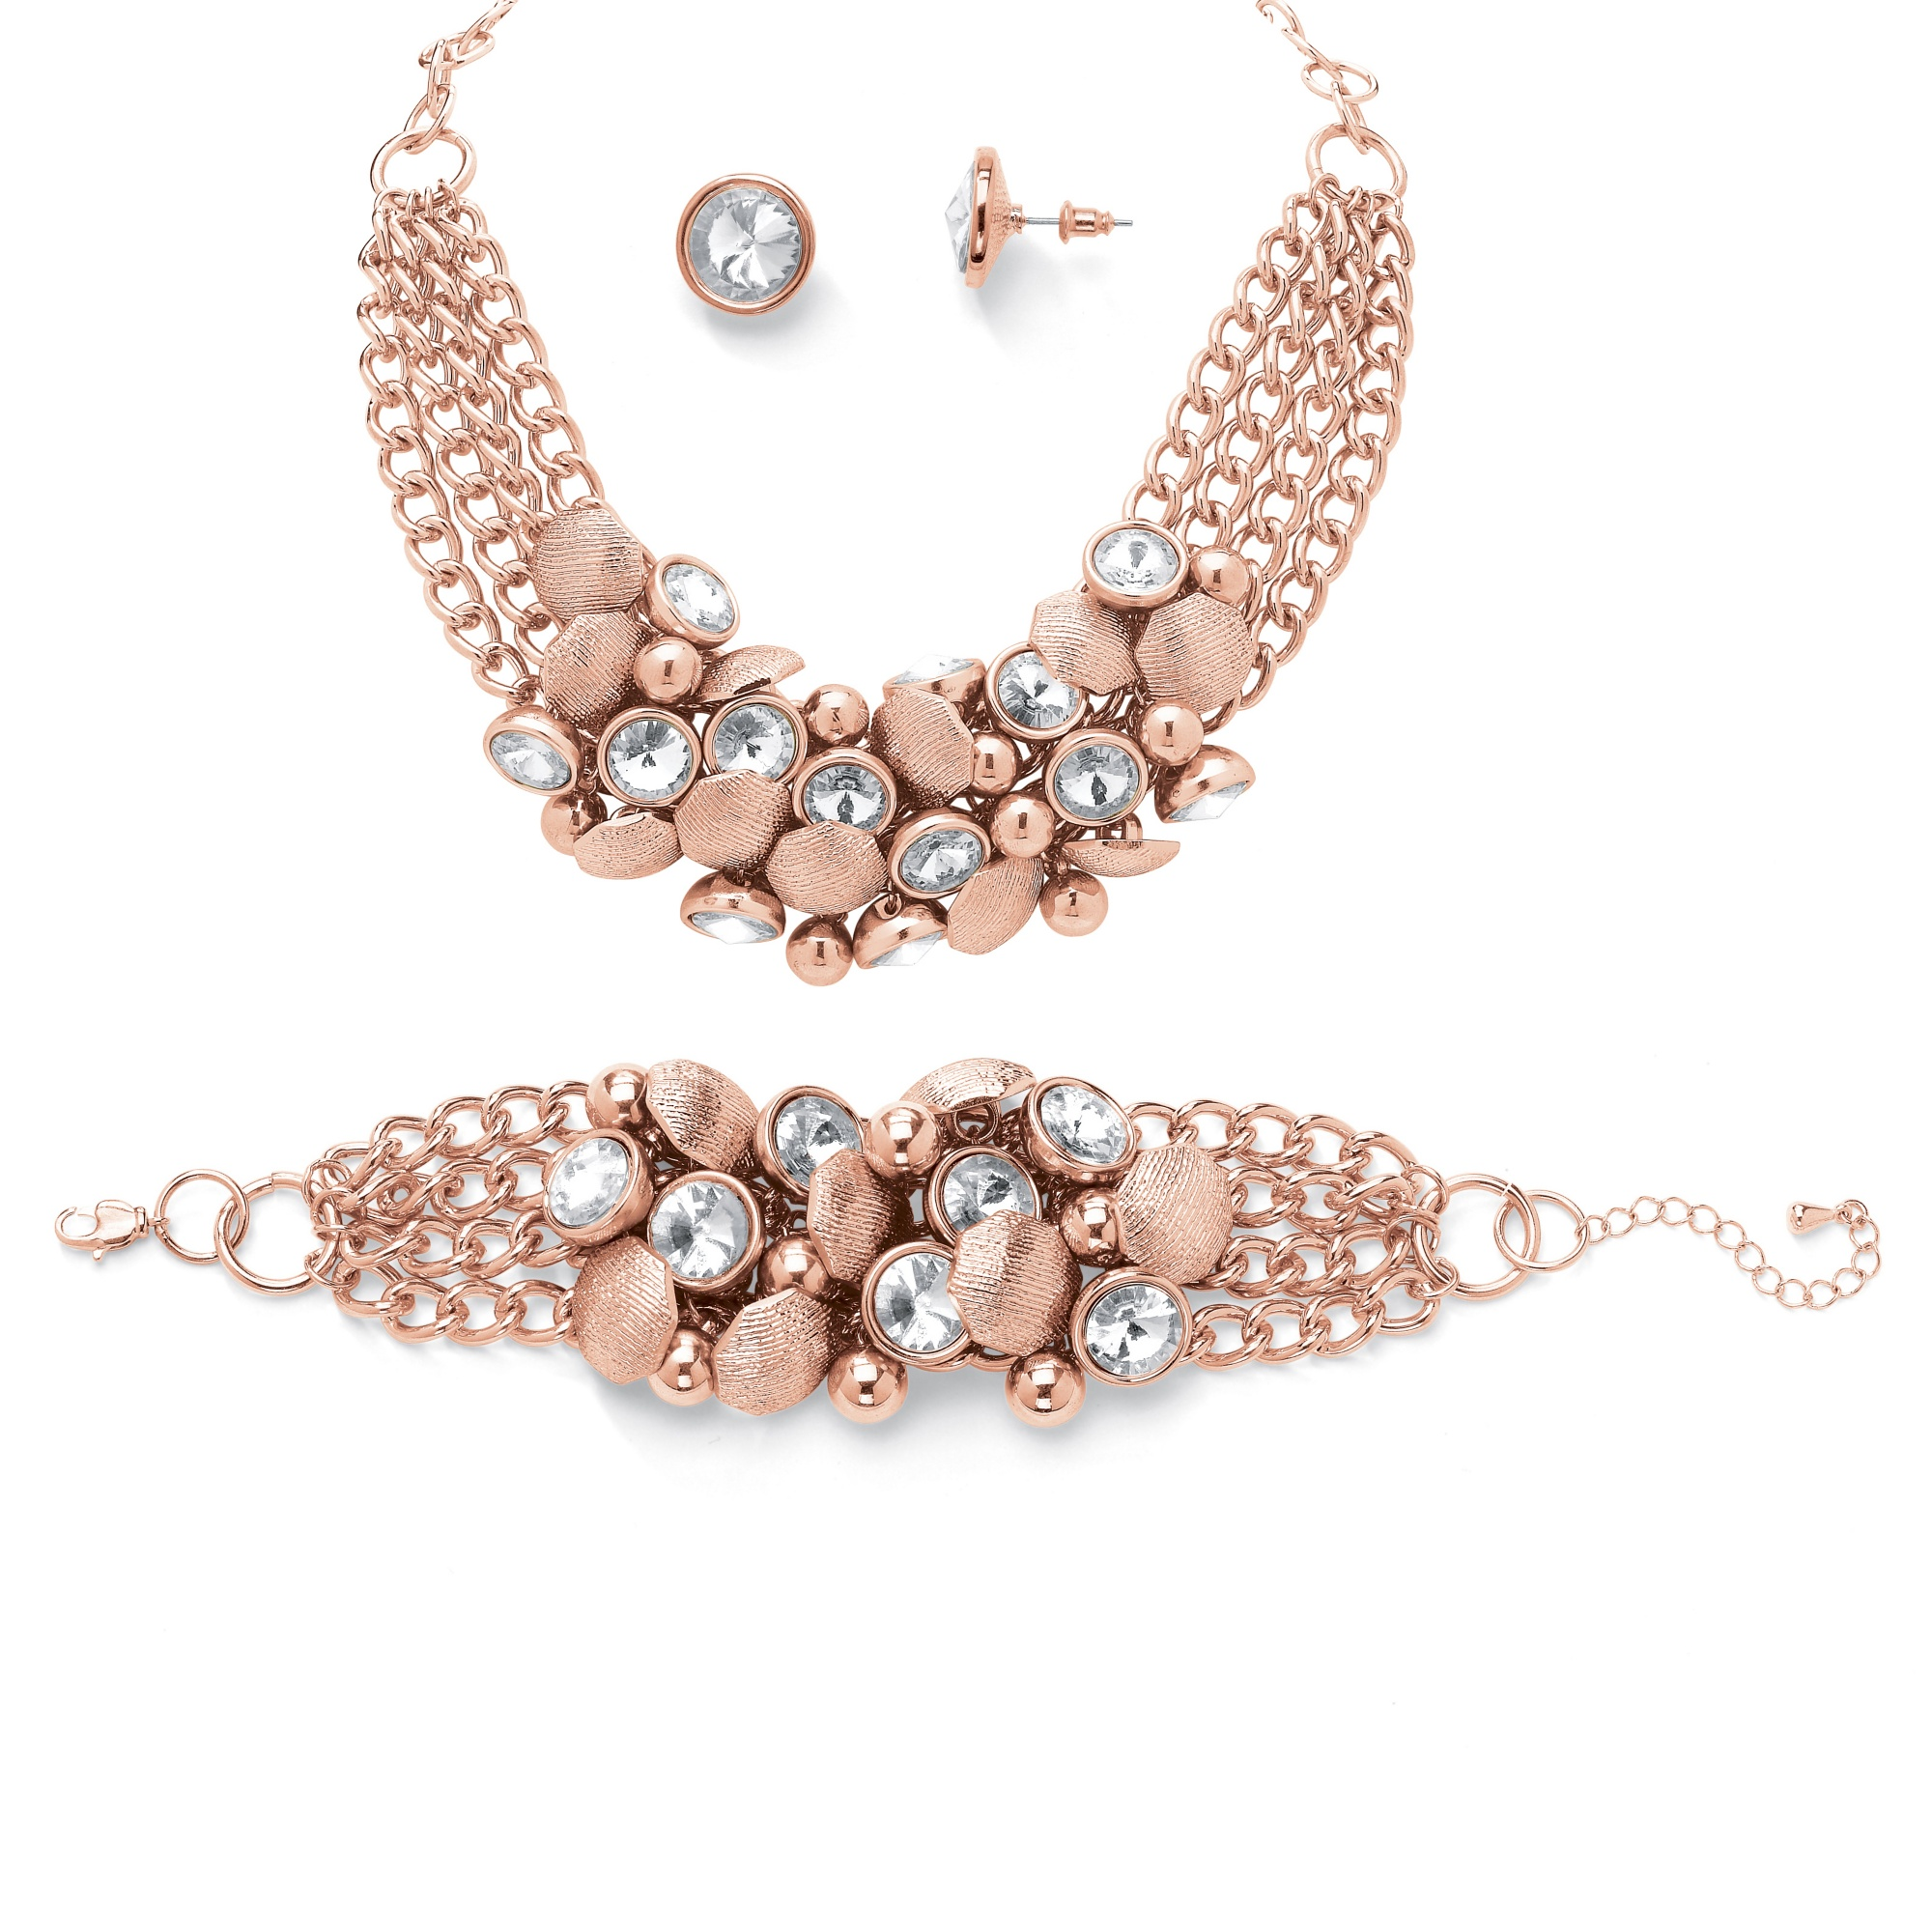 Bezel Set Crystal Rose Gold Plated Collar Necklace Bracelet And Stud Earrings At Palmbeach Jewelry